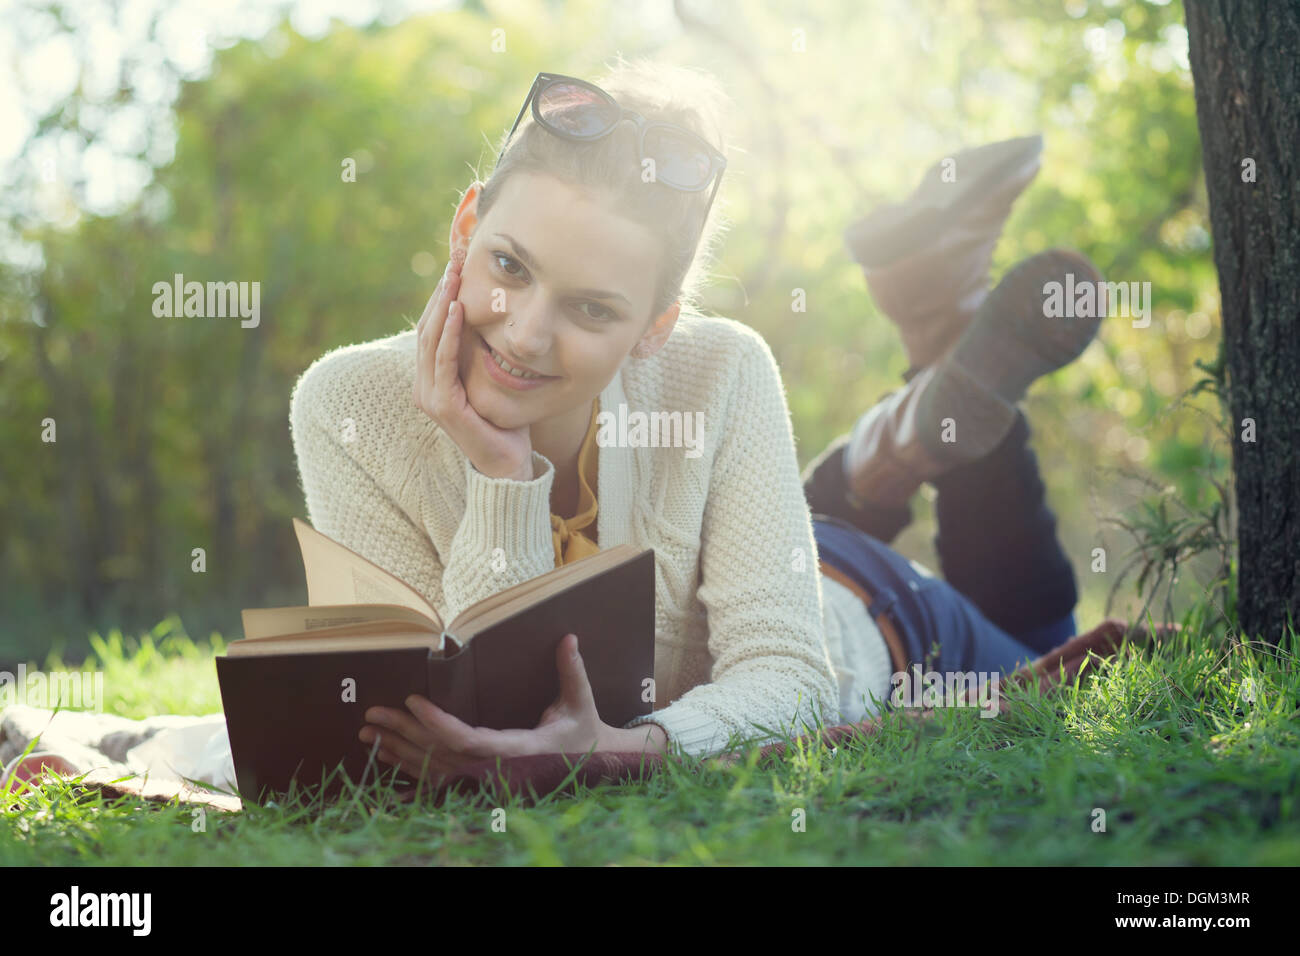 book, student, cute, girl, beautiful, glasses, hipster, people, person, portrait, caucasian, holding, one, smile, human, young, - Stock Image